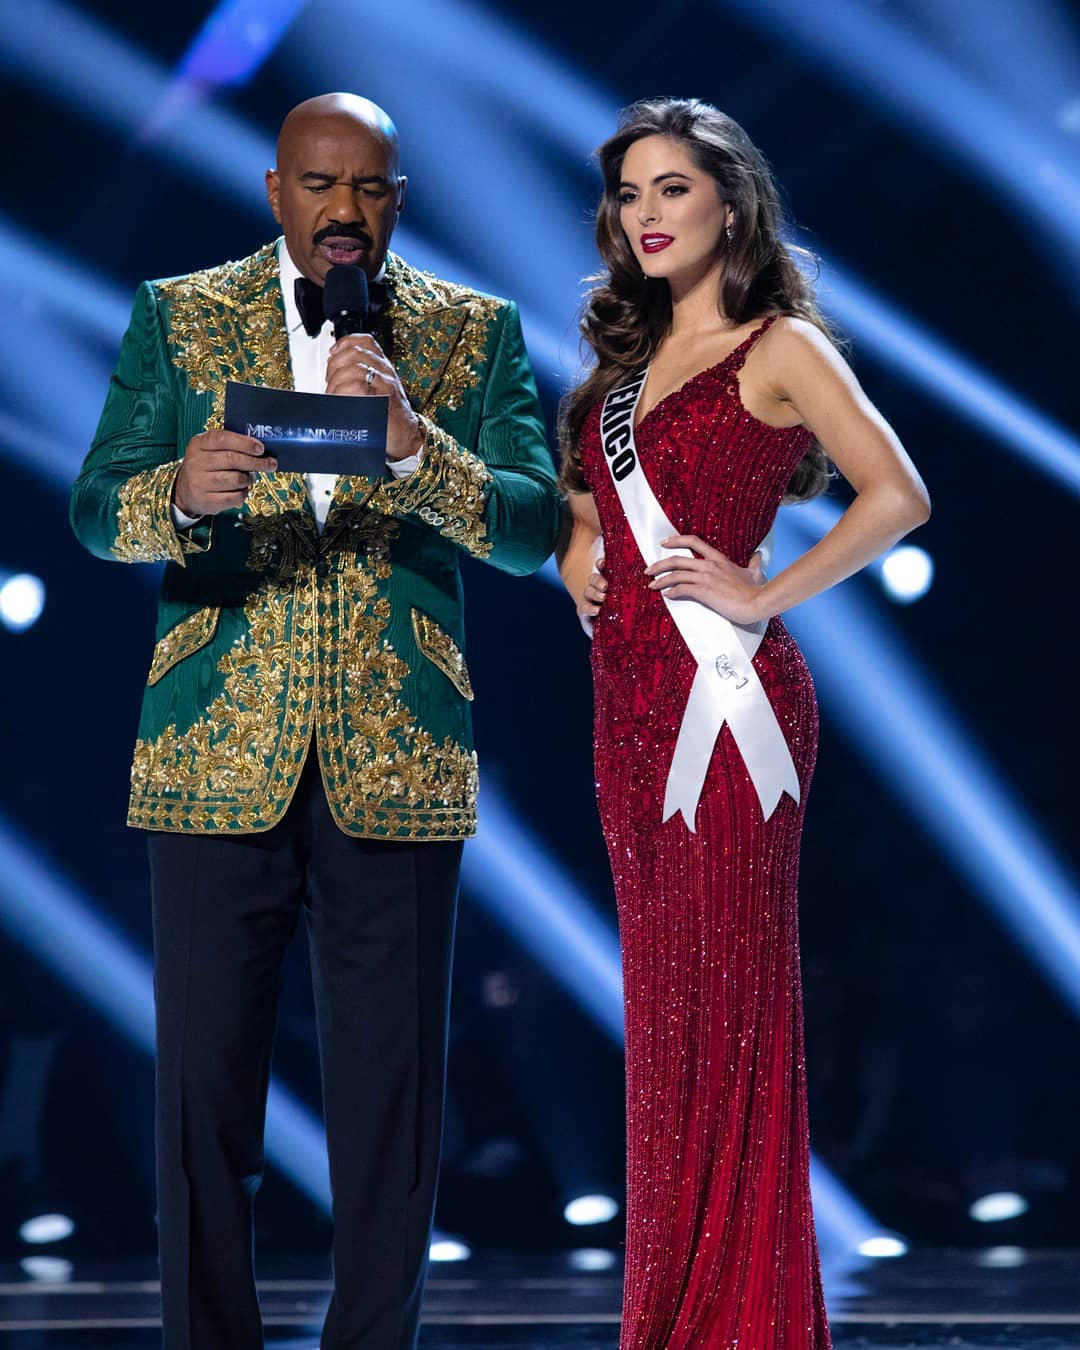 sofia aragon, 2nd runner-up de miss universe 2019. - Página 17 75561314